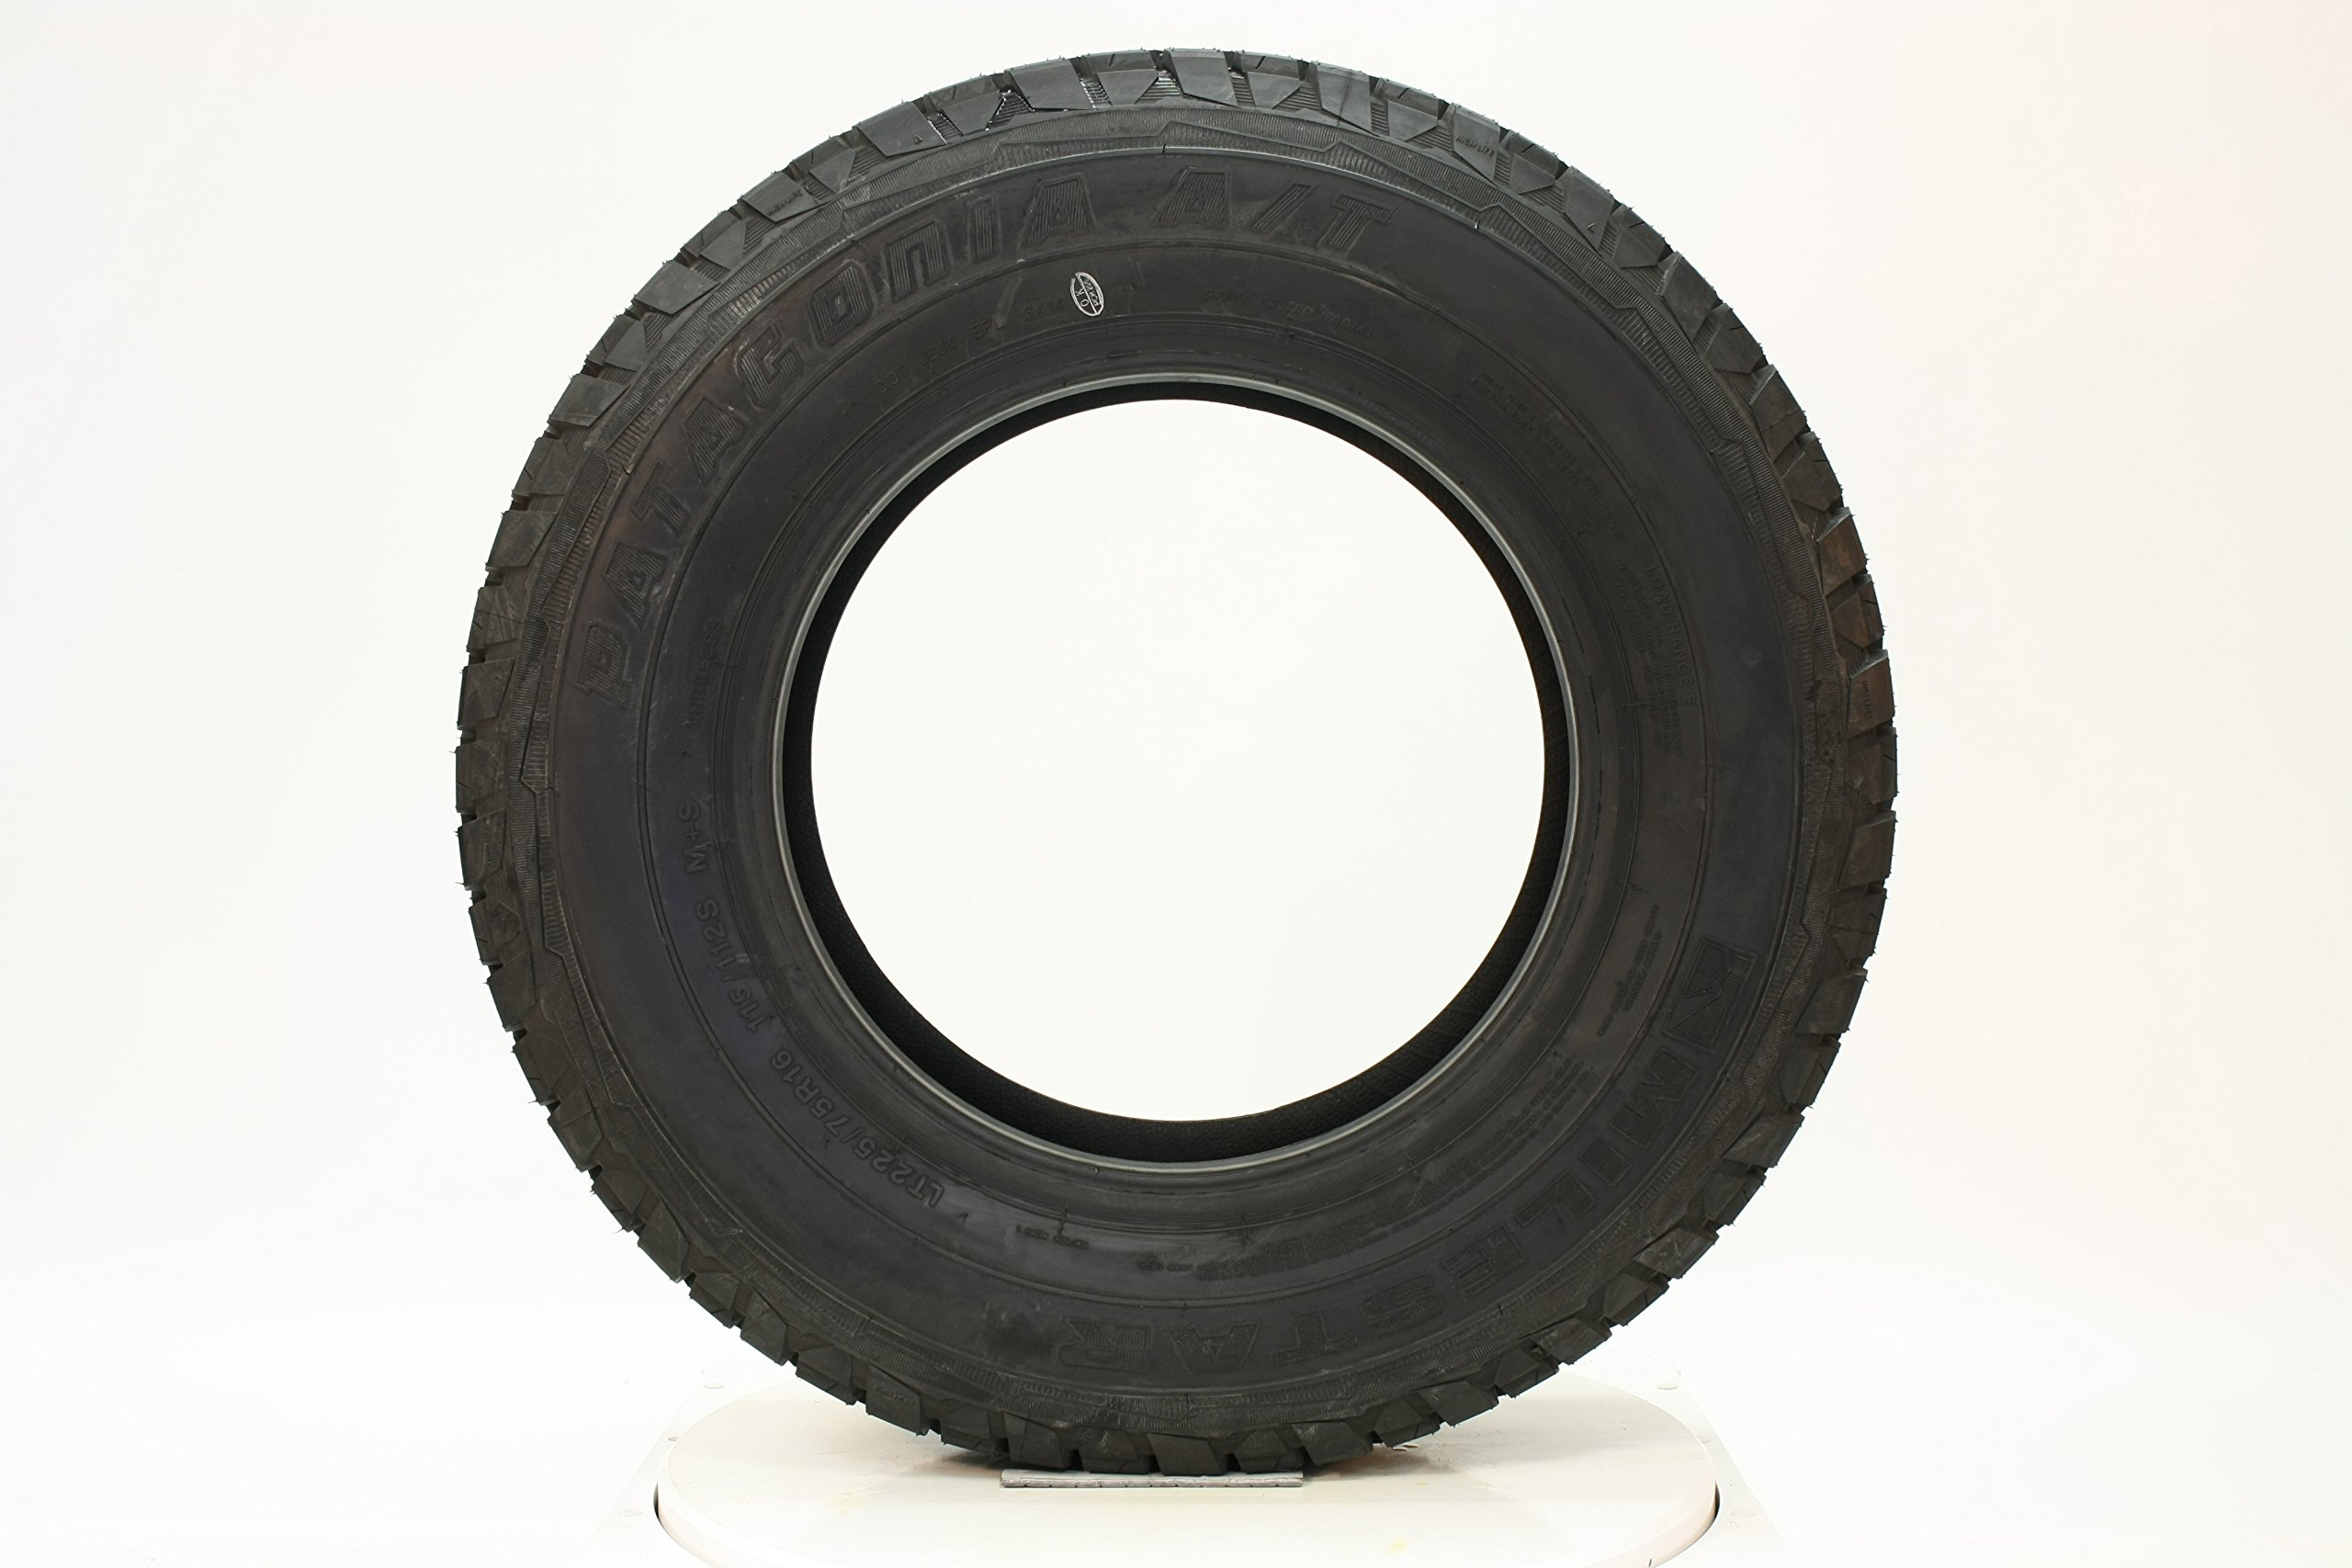 Milestar Patagonia A/T Off-Road Radial Tire - 235/70R16 by Milestar (Image #2)